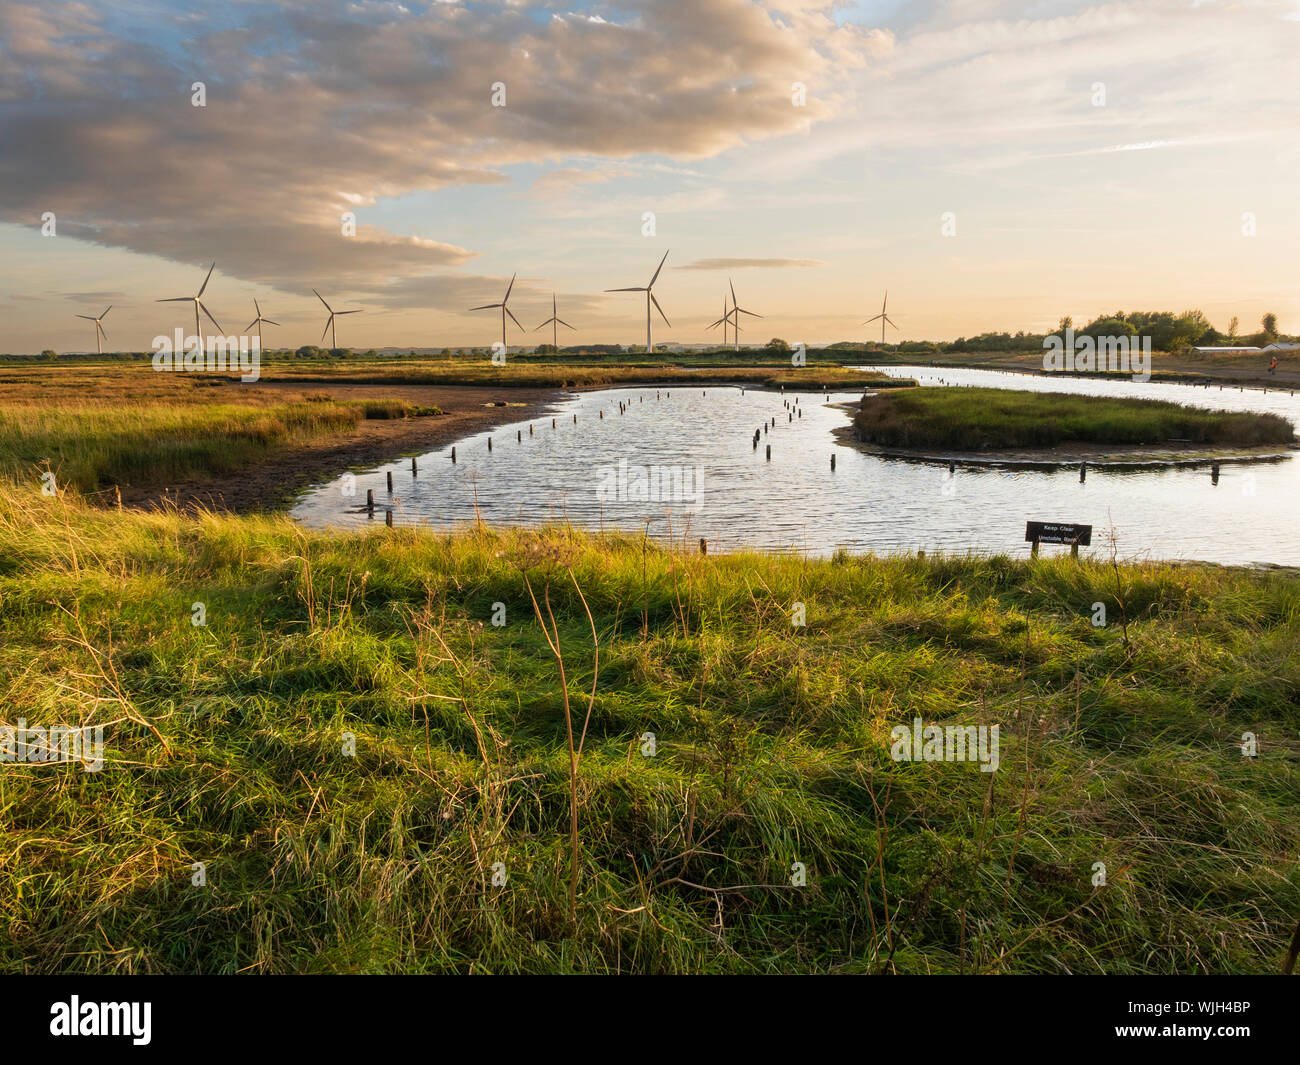 saline-pool-and-background-windfarm-at-the-rspb-reserve-on-tetney-marshes-north-east-lincolnshire-WJH4BP.jpg